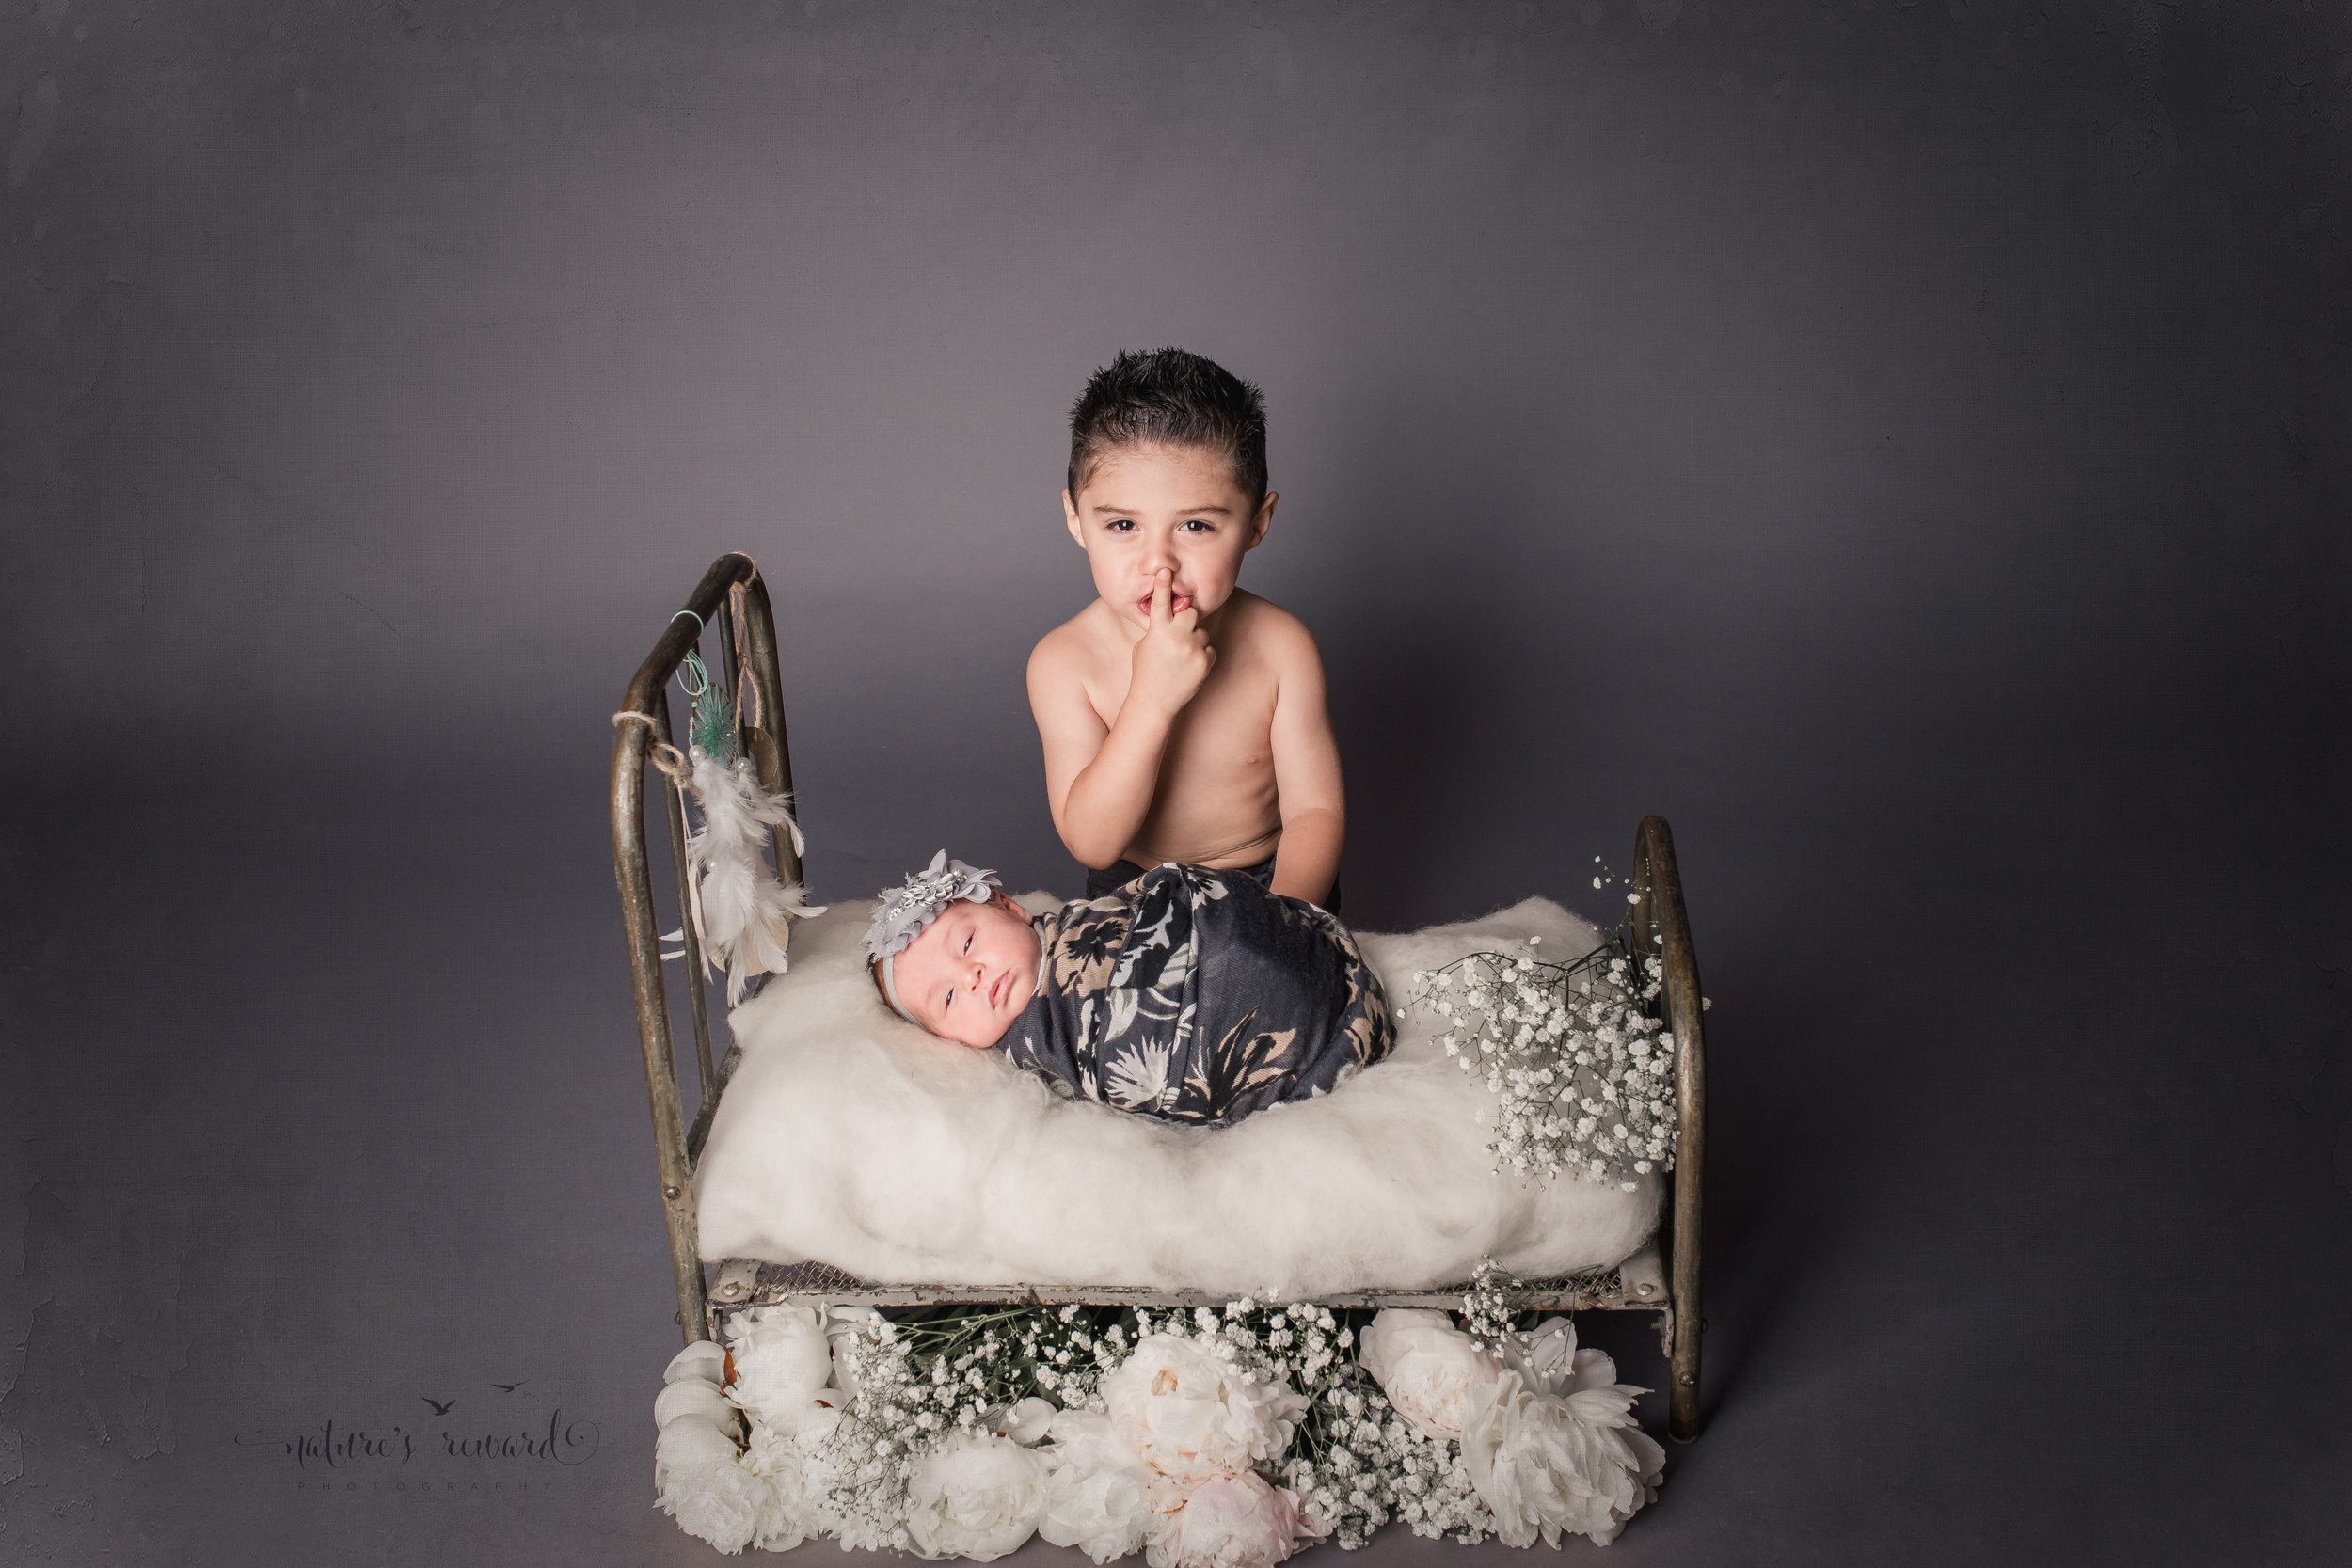 Sibling newborn baby portrait in greys and whites, laying on a doll bed.A Portrait By Nature's Reward Photography, a San Bernardino Family, Child, and Newborn Baby Photographer.